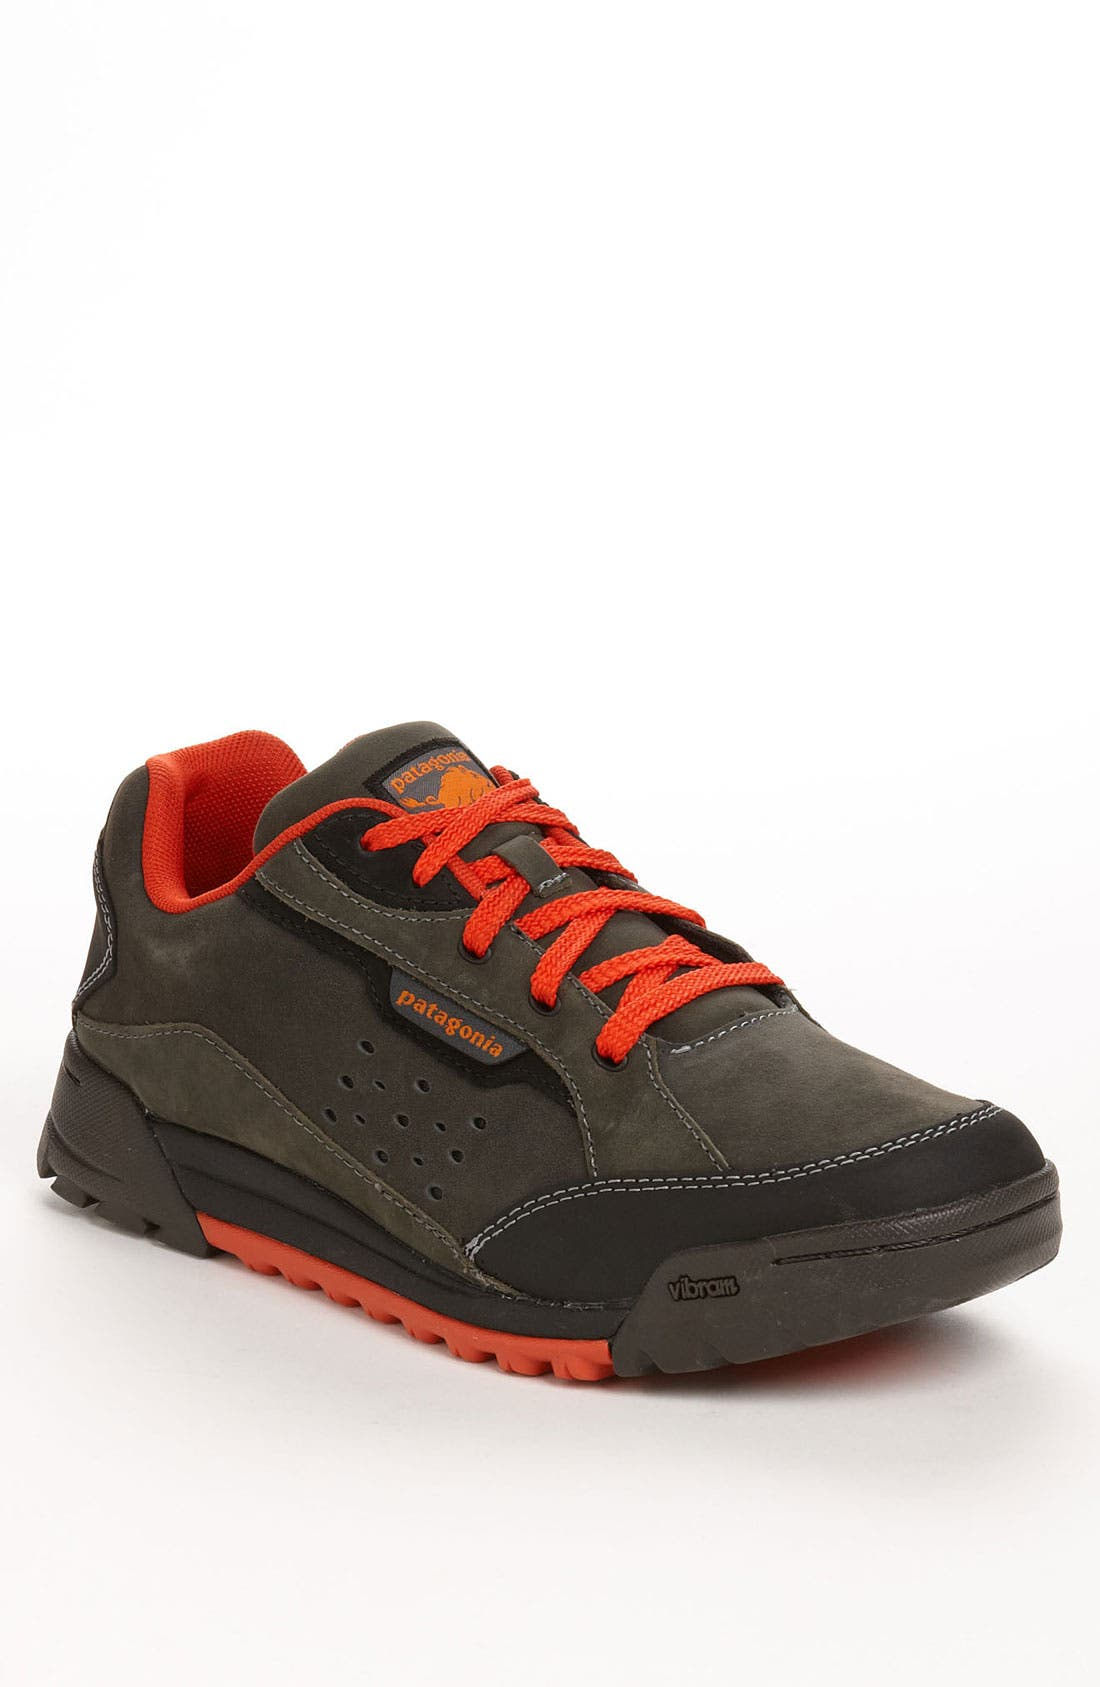 Alternate Image 1 Selected - Patagonia 'Boaris 2' Walking Shoe (Men)